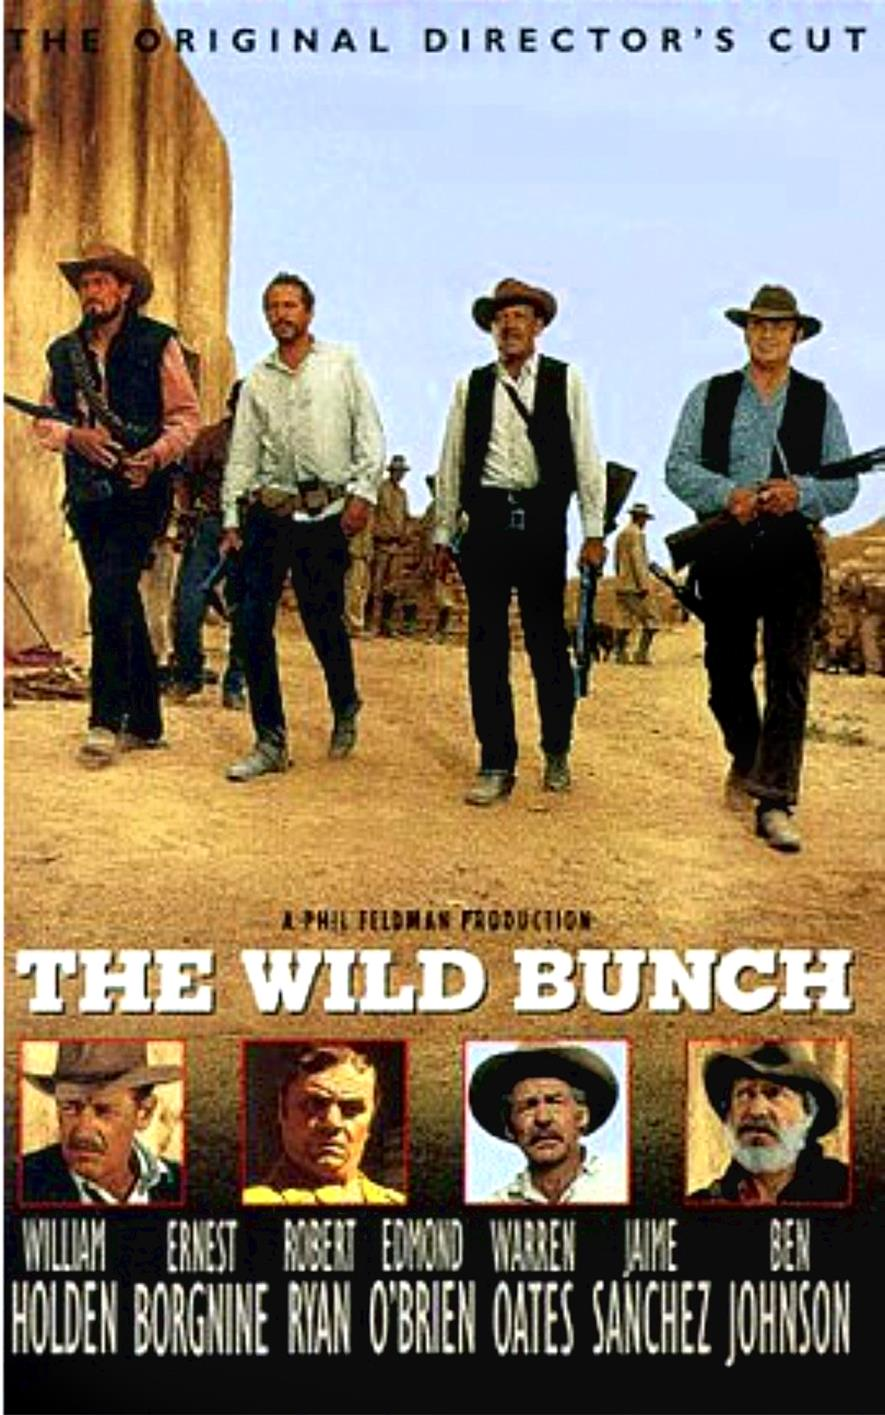 the wild bunch poster 7 MCNews